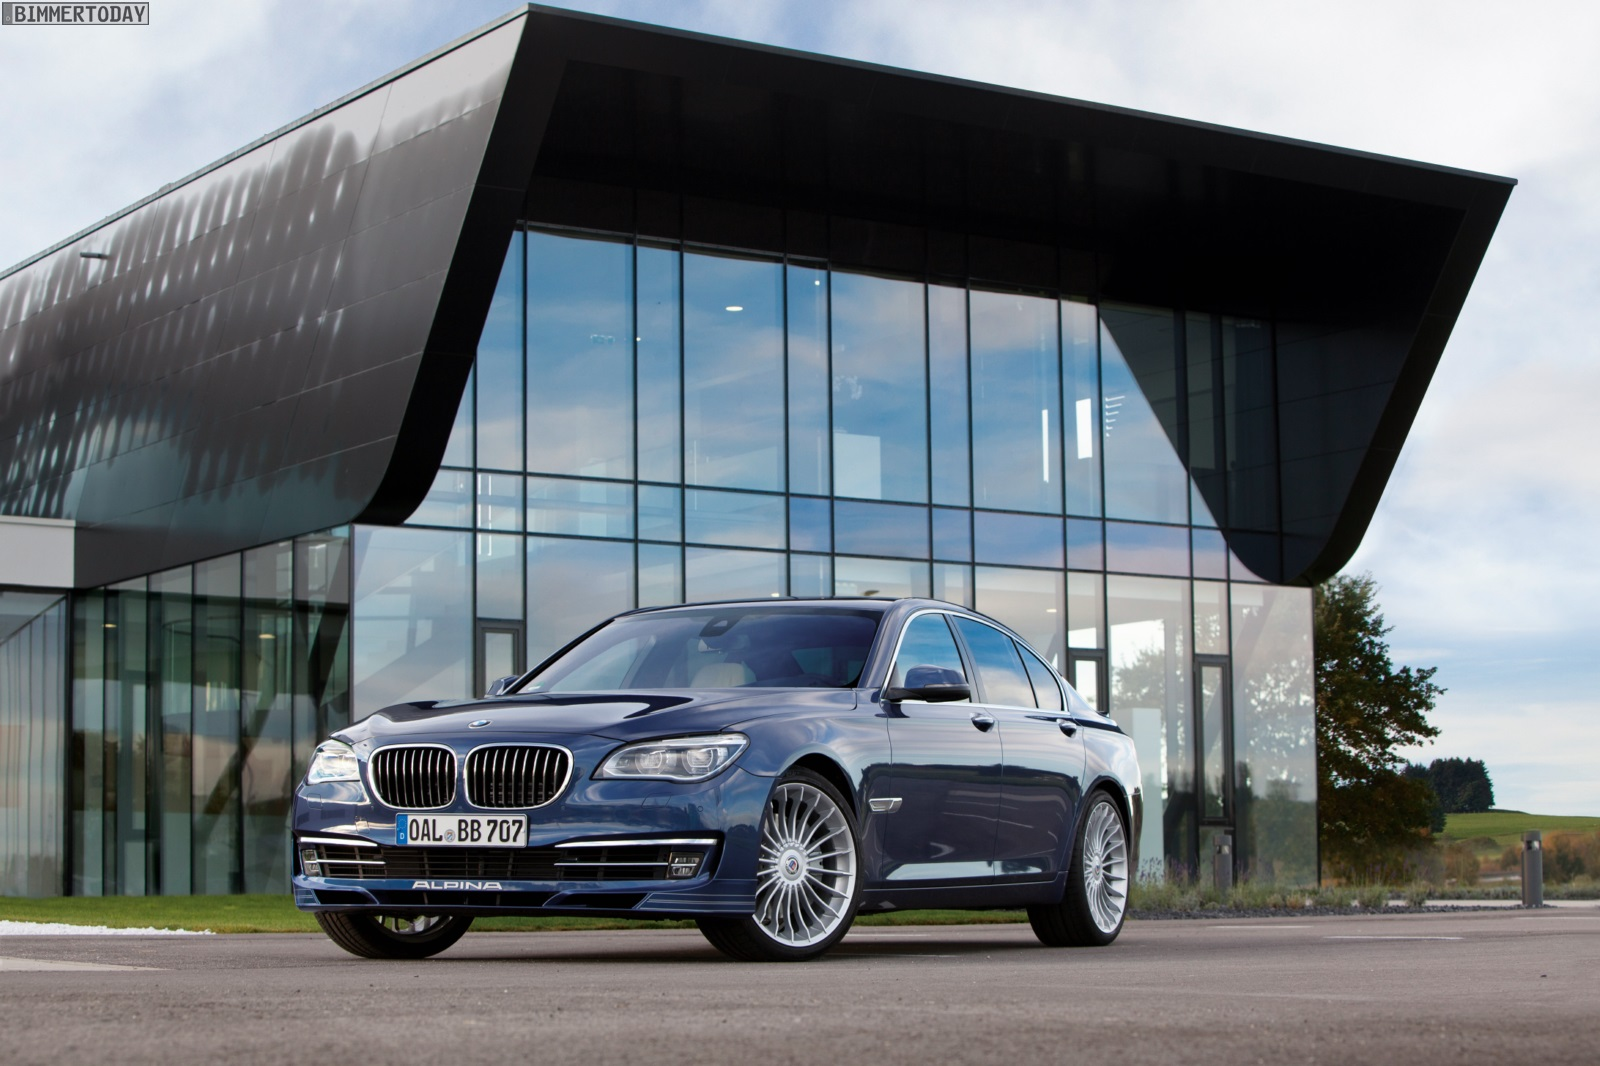 Wallpapers Alpina B7 Lci